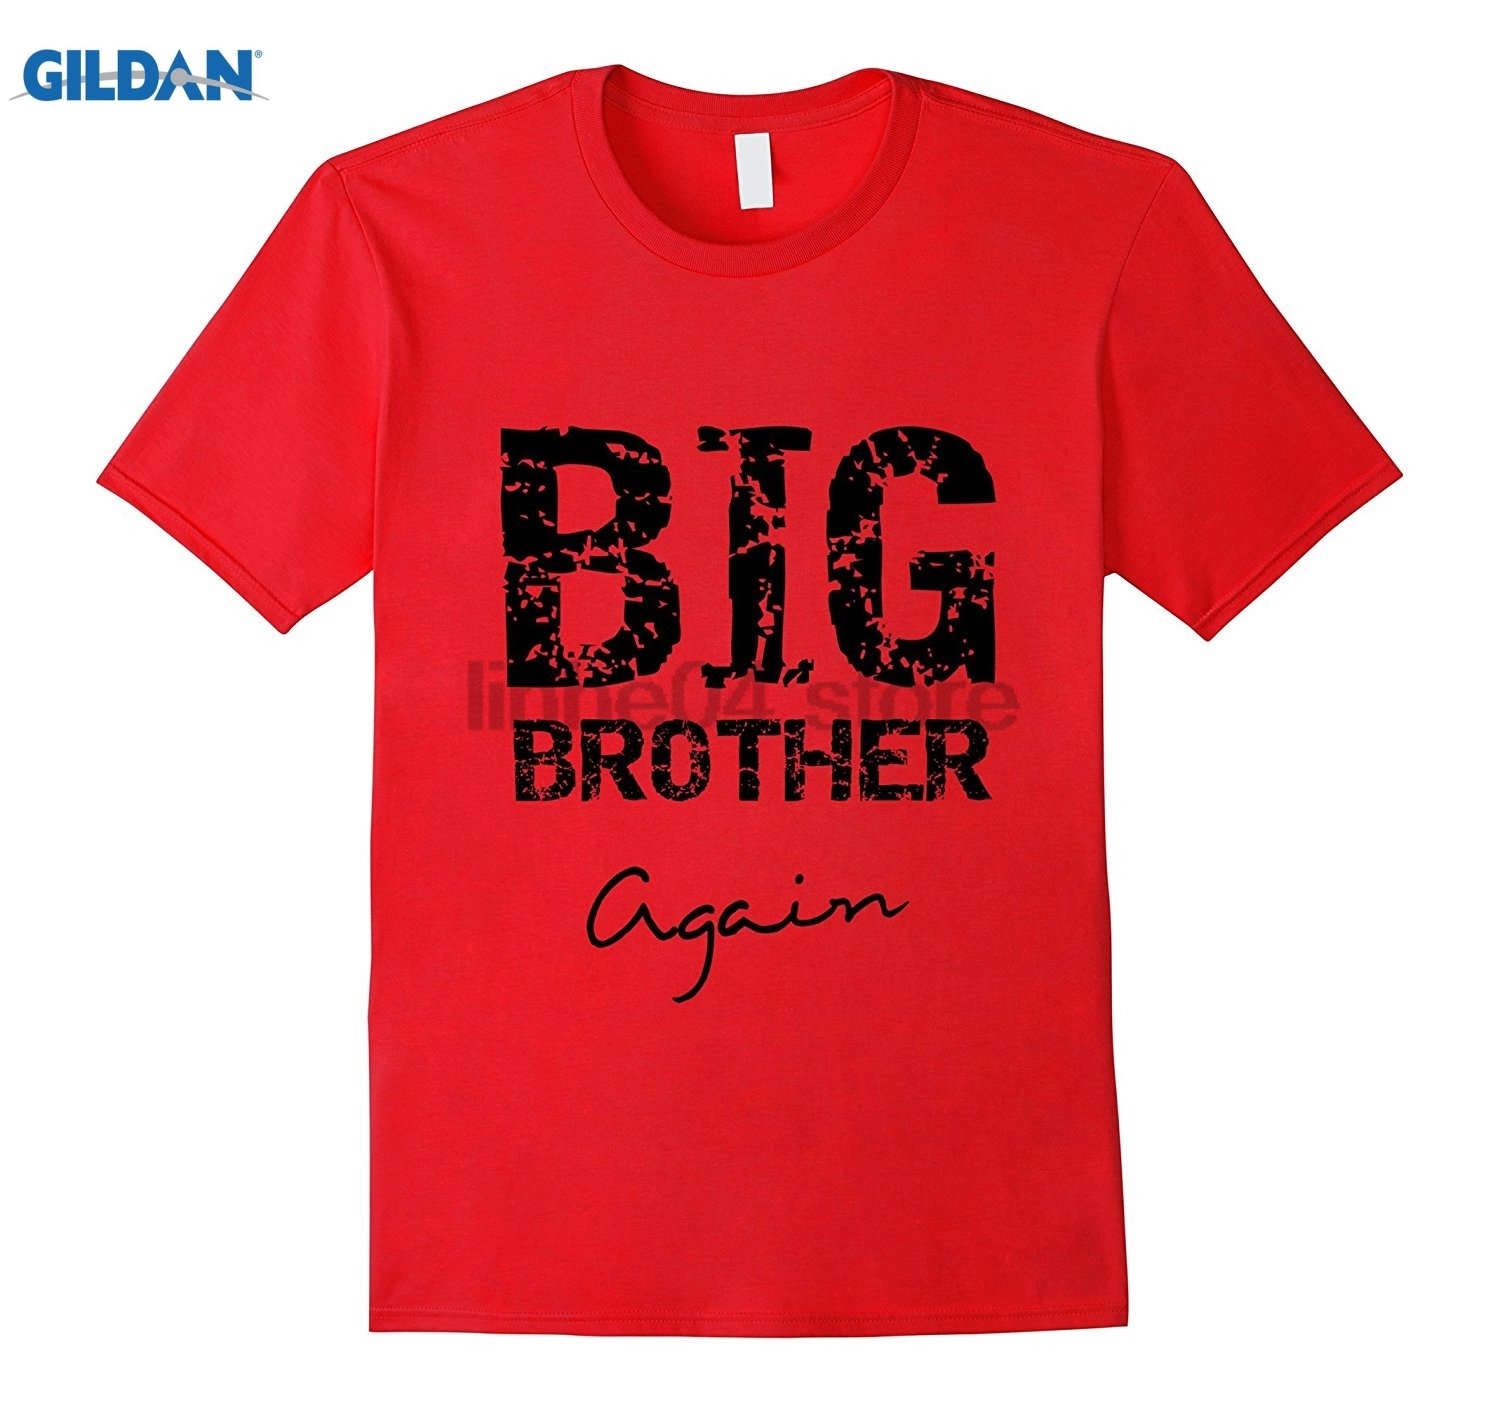 GILDAN Big Brother Again T Shirt for Kids and Youth Mothers Day Ms. T-shirt Dress female T-shirt Womens T-shirt